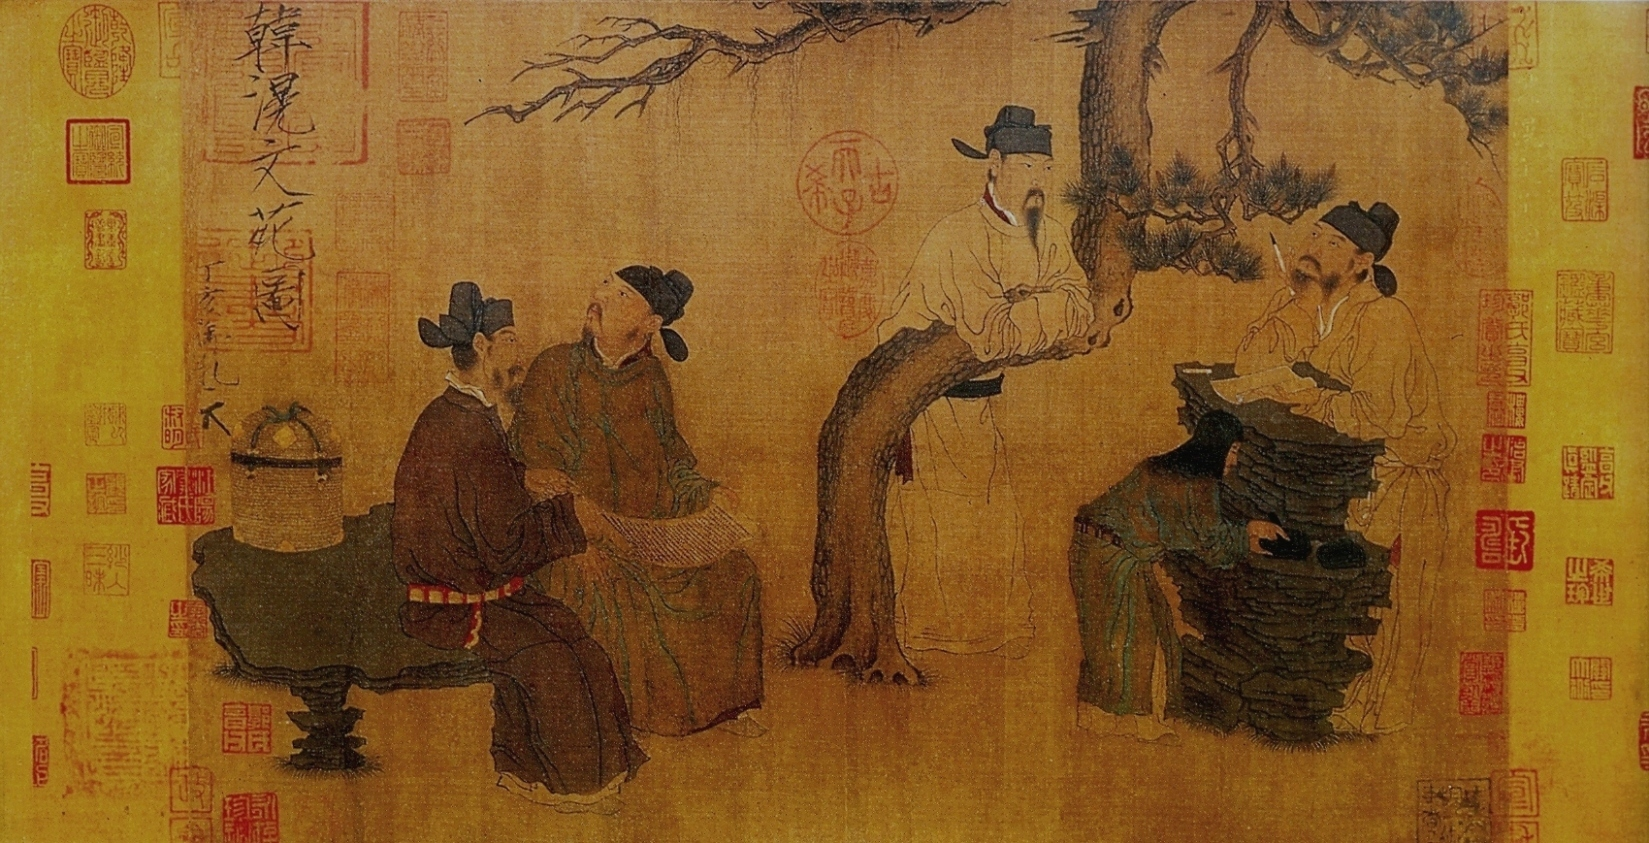 the history of ancient china essay Ancient china essay questions  chinese history follows a repeating pattern known as the dynastic cycle it is the historical pattern of the rise, decline, and.